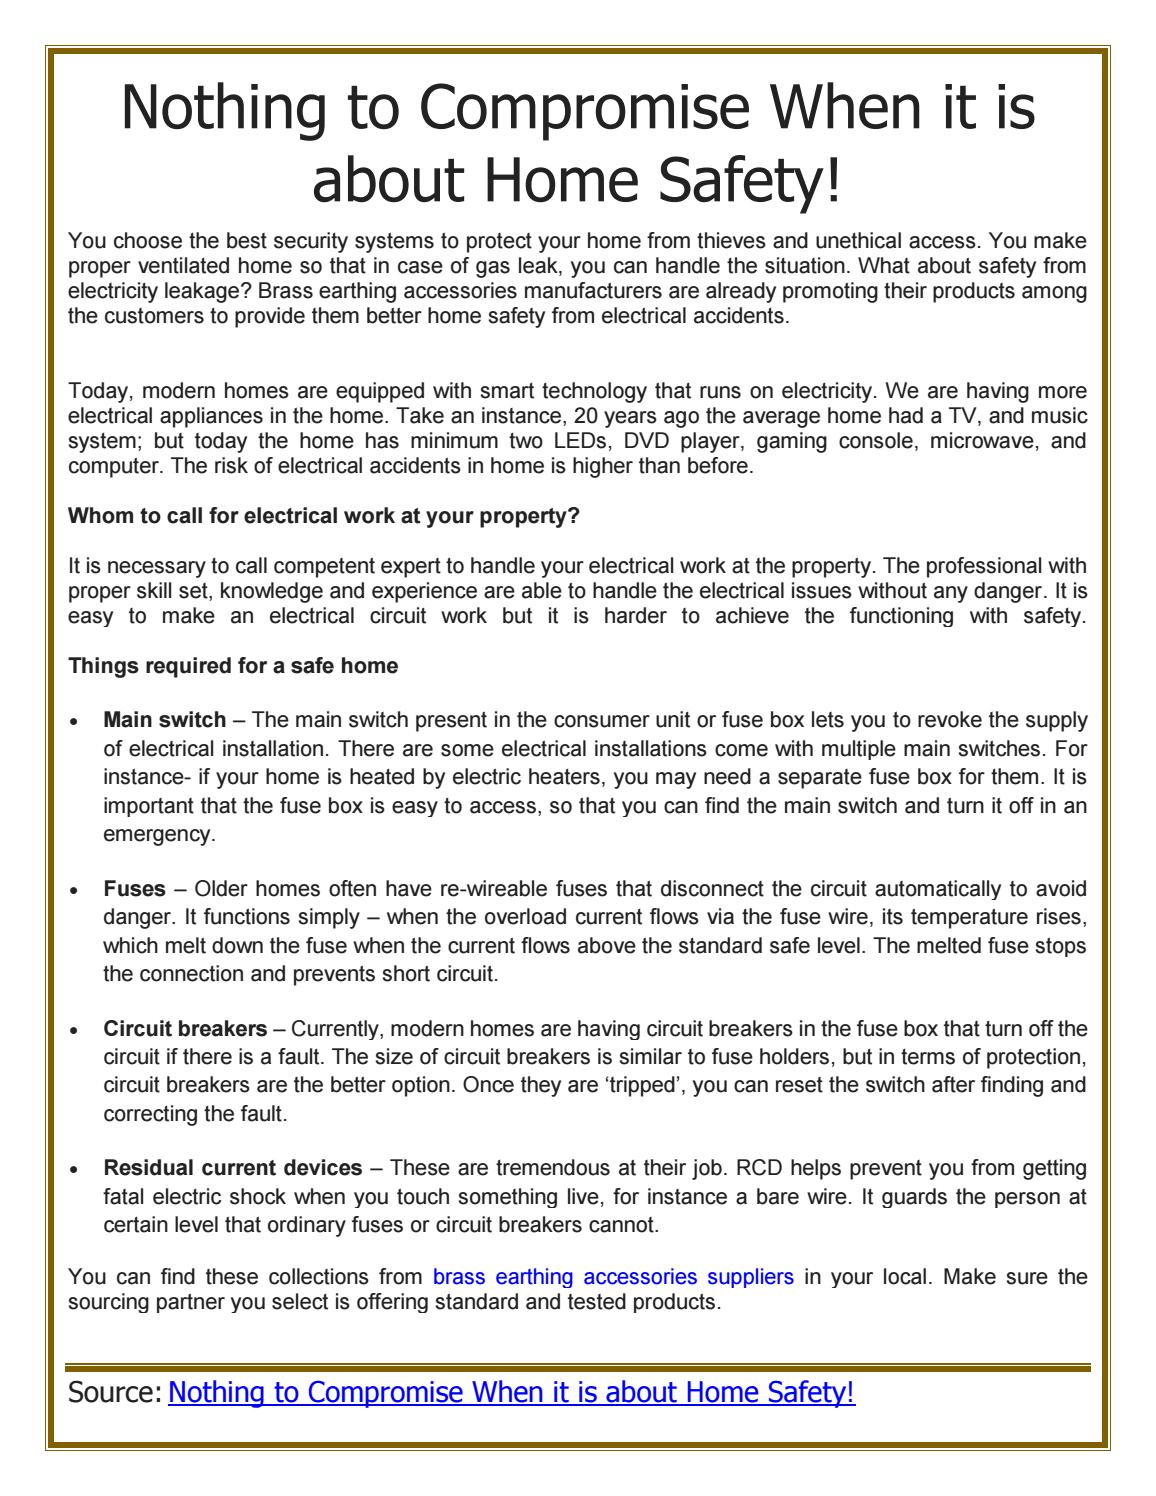 Nothing To Compromise When It Is About Home Safety By Pallega Issuu Safe Fuse Box